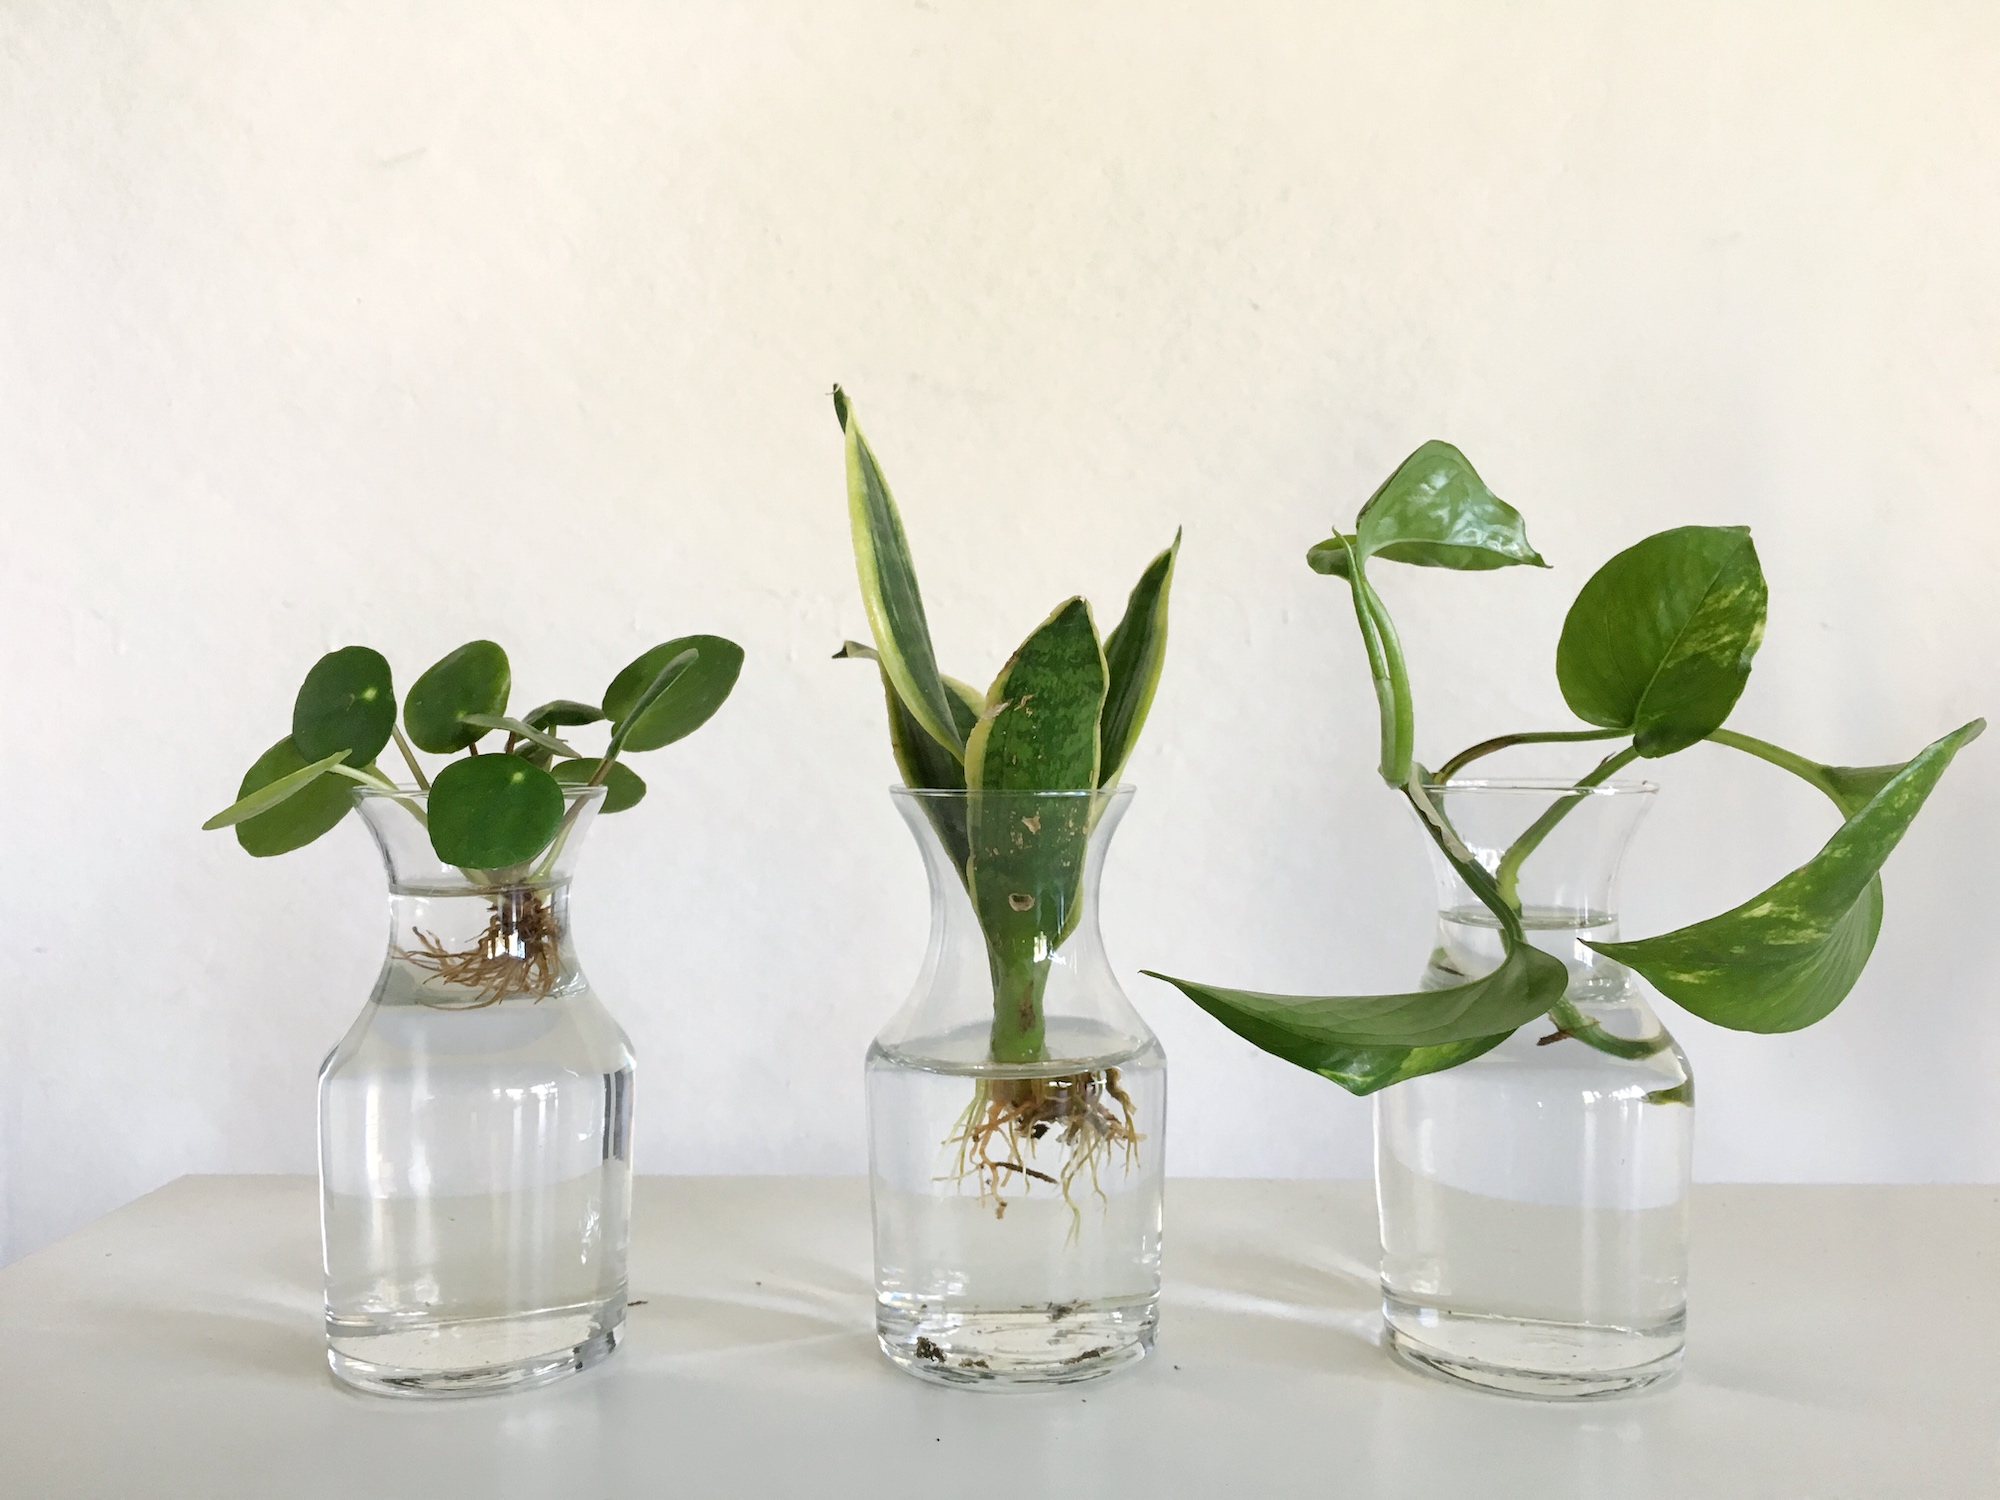 How to propagate plants, including pothos, snake plant, and pilea